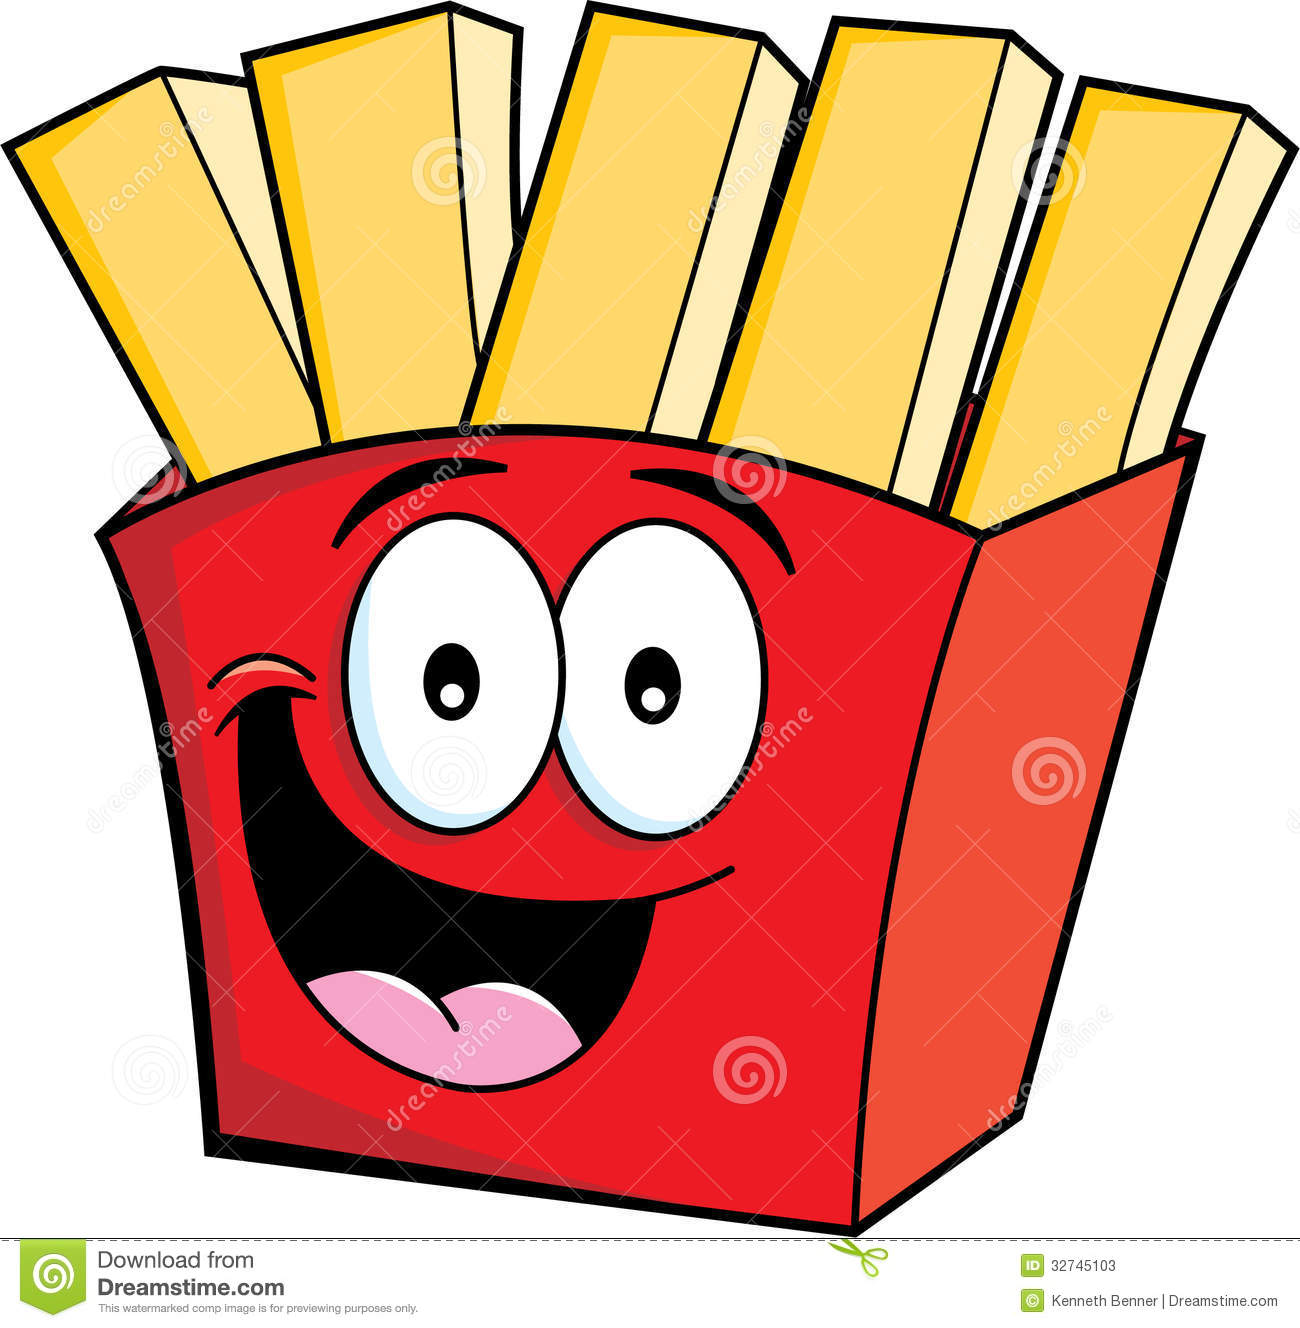 Animated french fries - photo#14